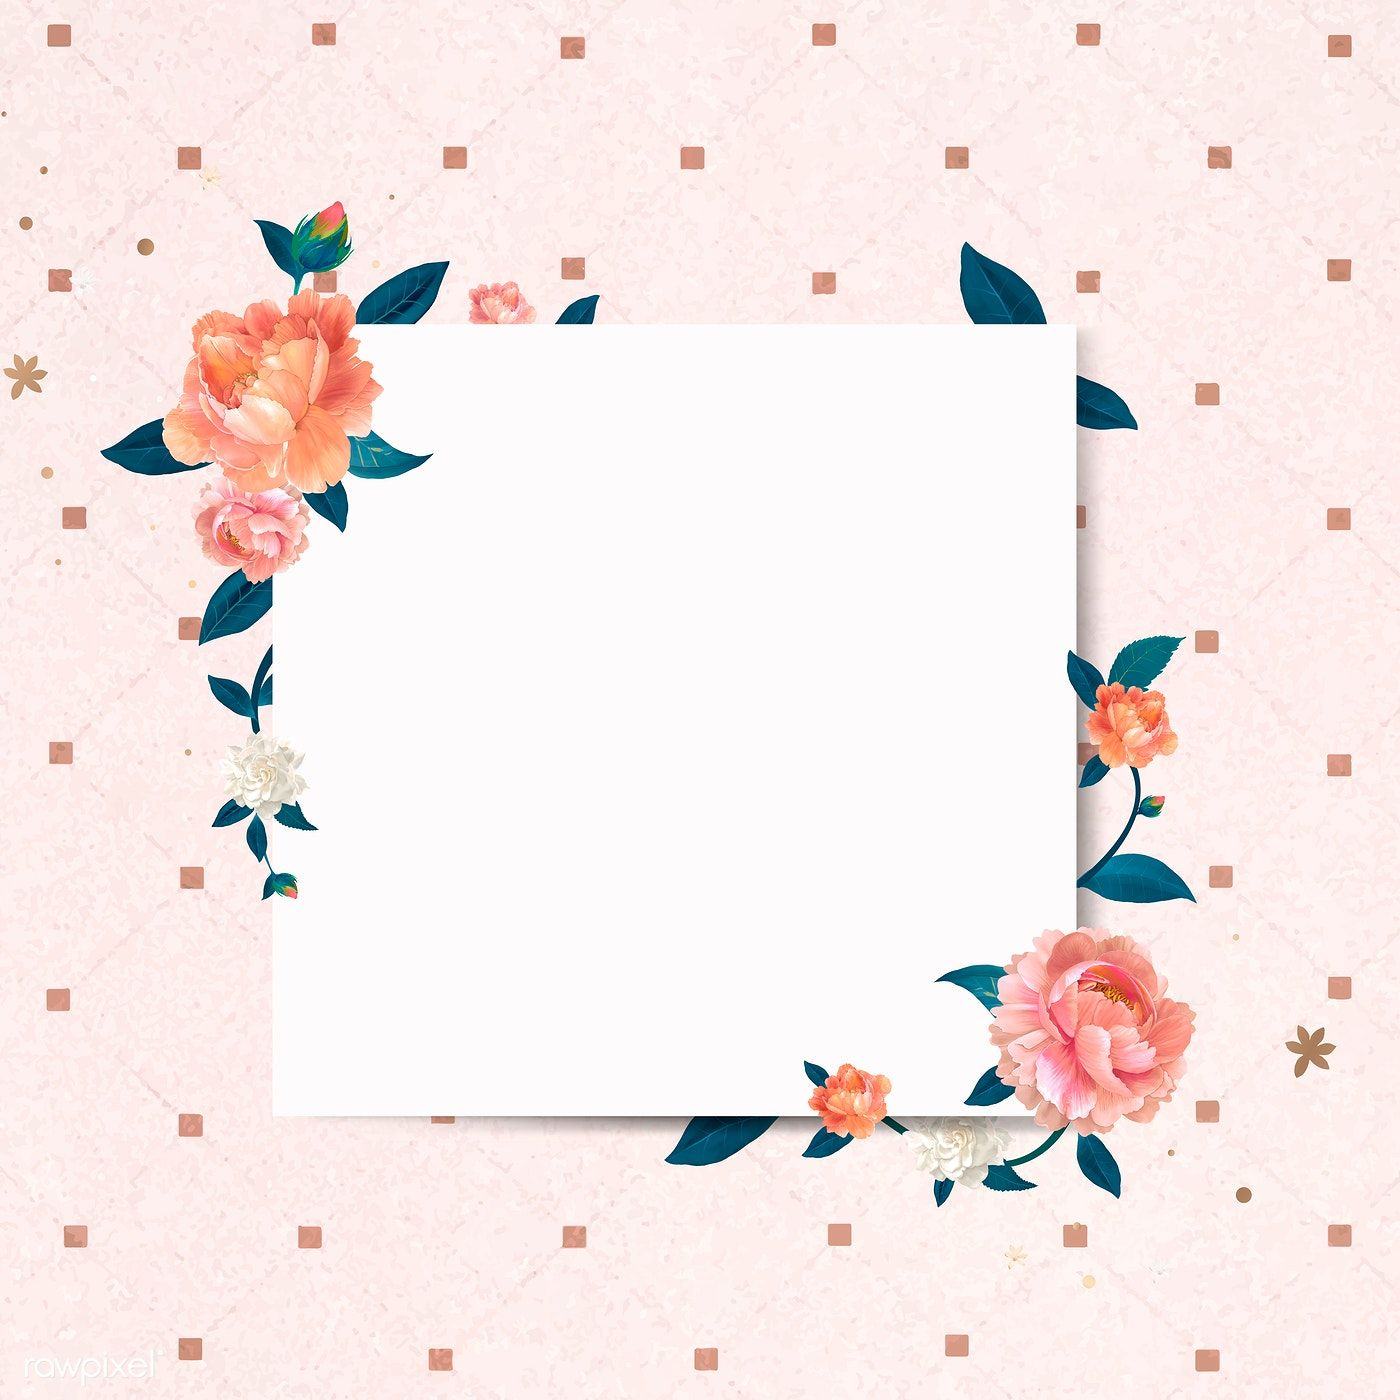 Download Premium Vector Of Blank Square Floral Frame Template Vector 679998 Frame Template Instagram Frame Template Flower Frame